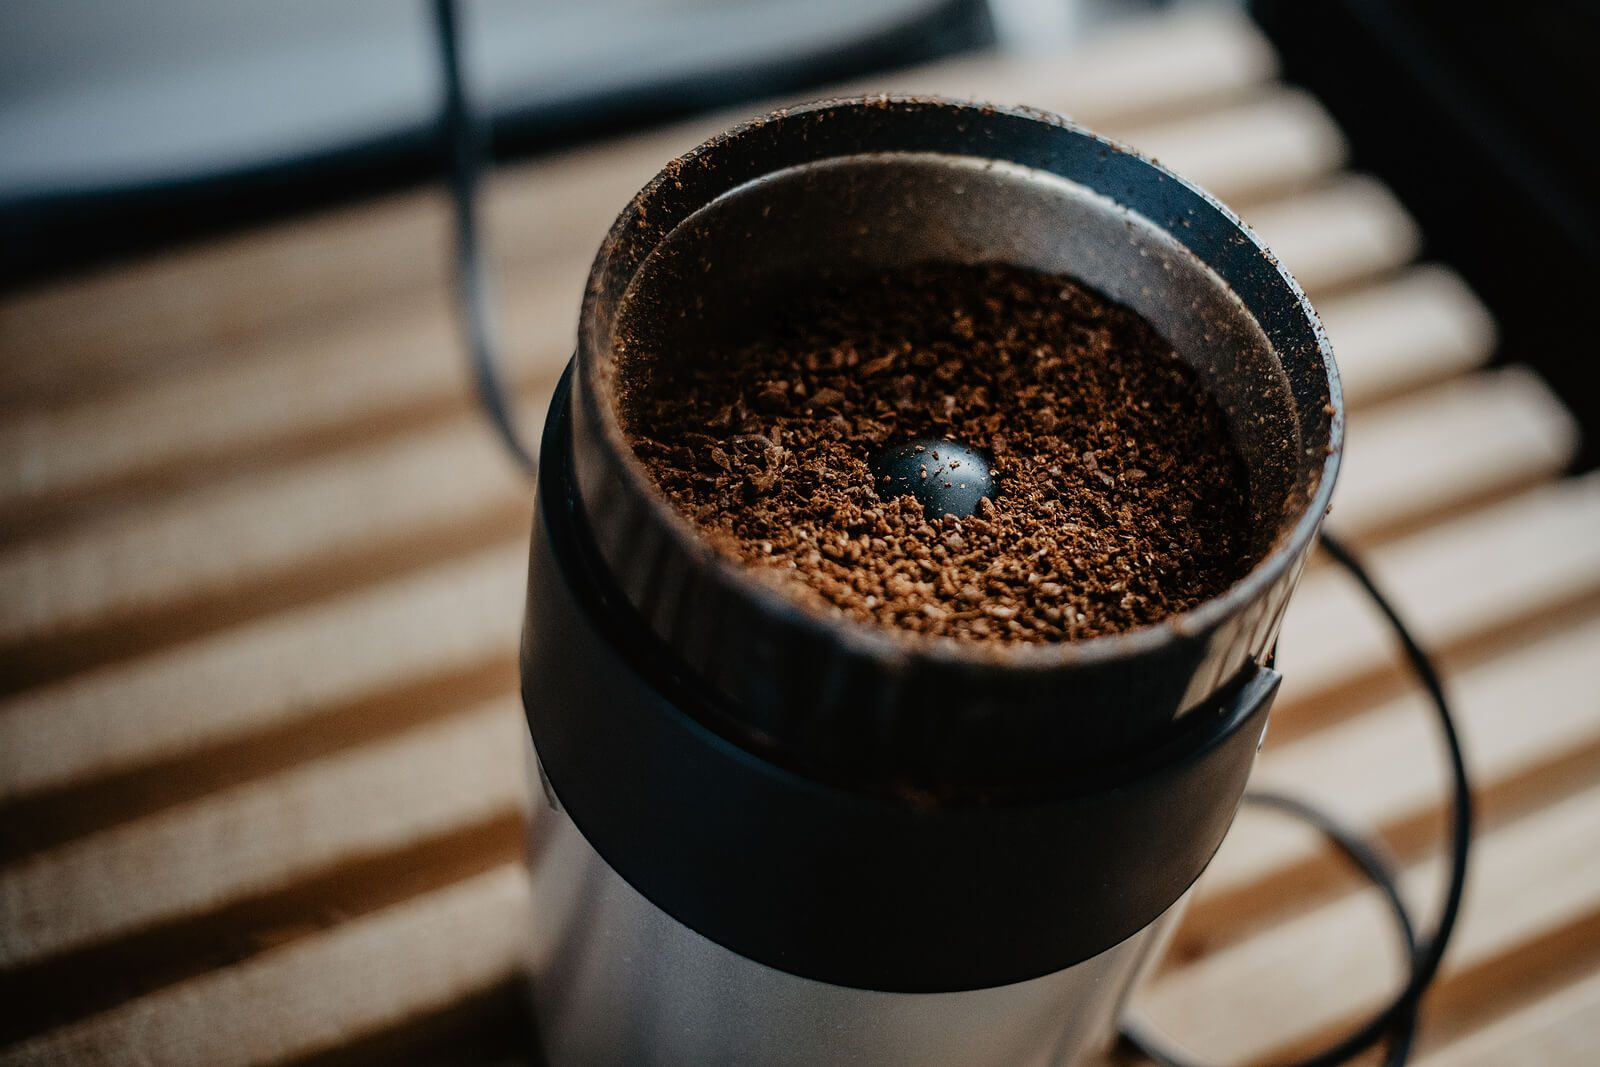 Grind your coffee beans